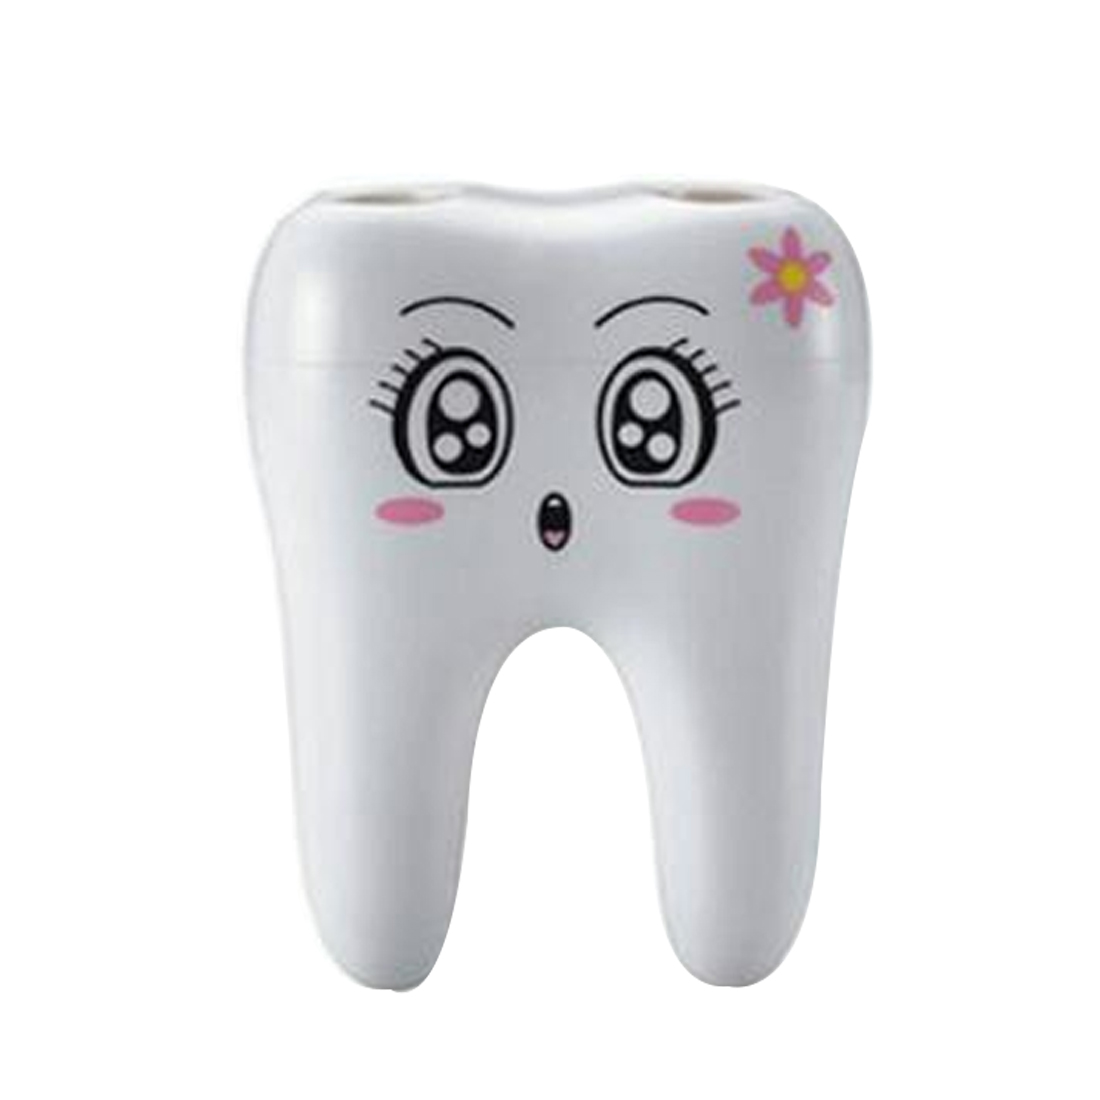 Teeth Style Toothbrush Holder 4 Hole Cartoon Toothbrush Stand Tooth Brush Shelf Bracket Container Bathroom Accessories Set